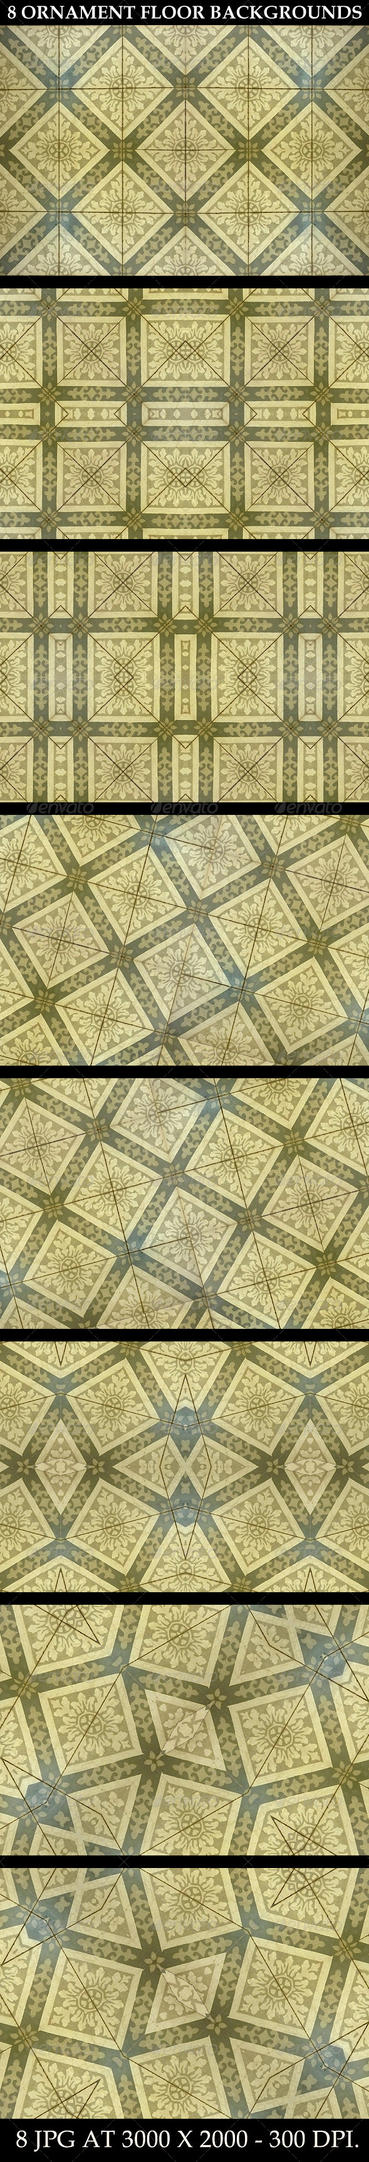 8 Ornament Floor Background Patterns by danfleites